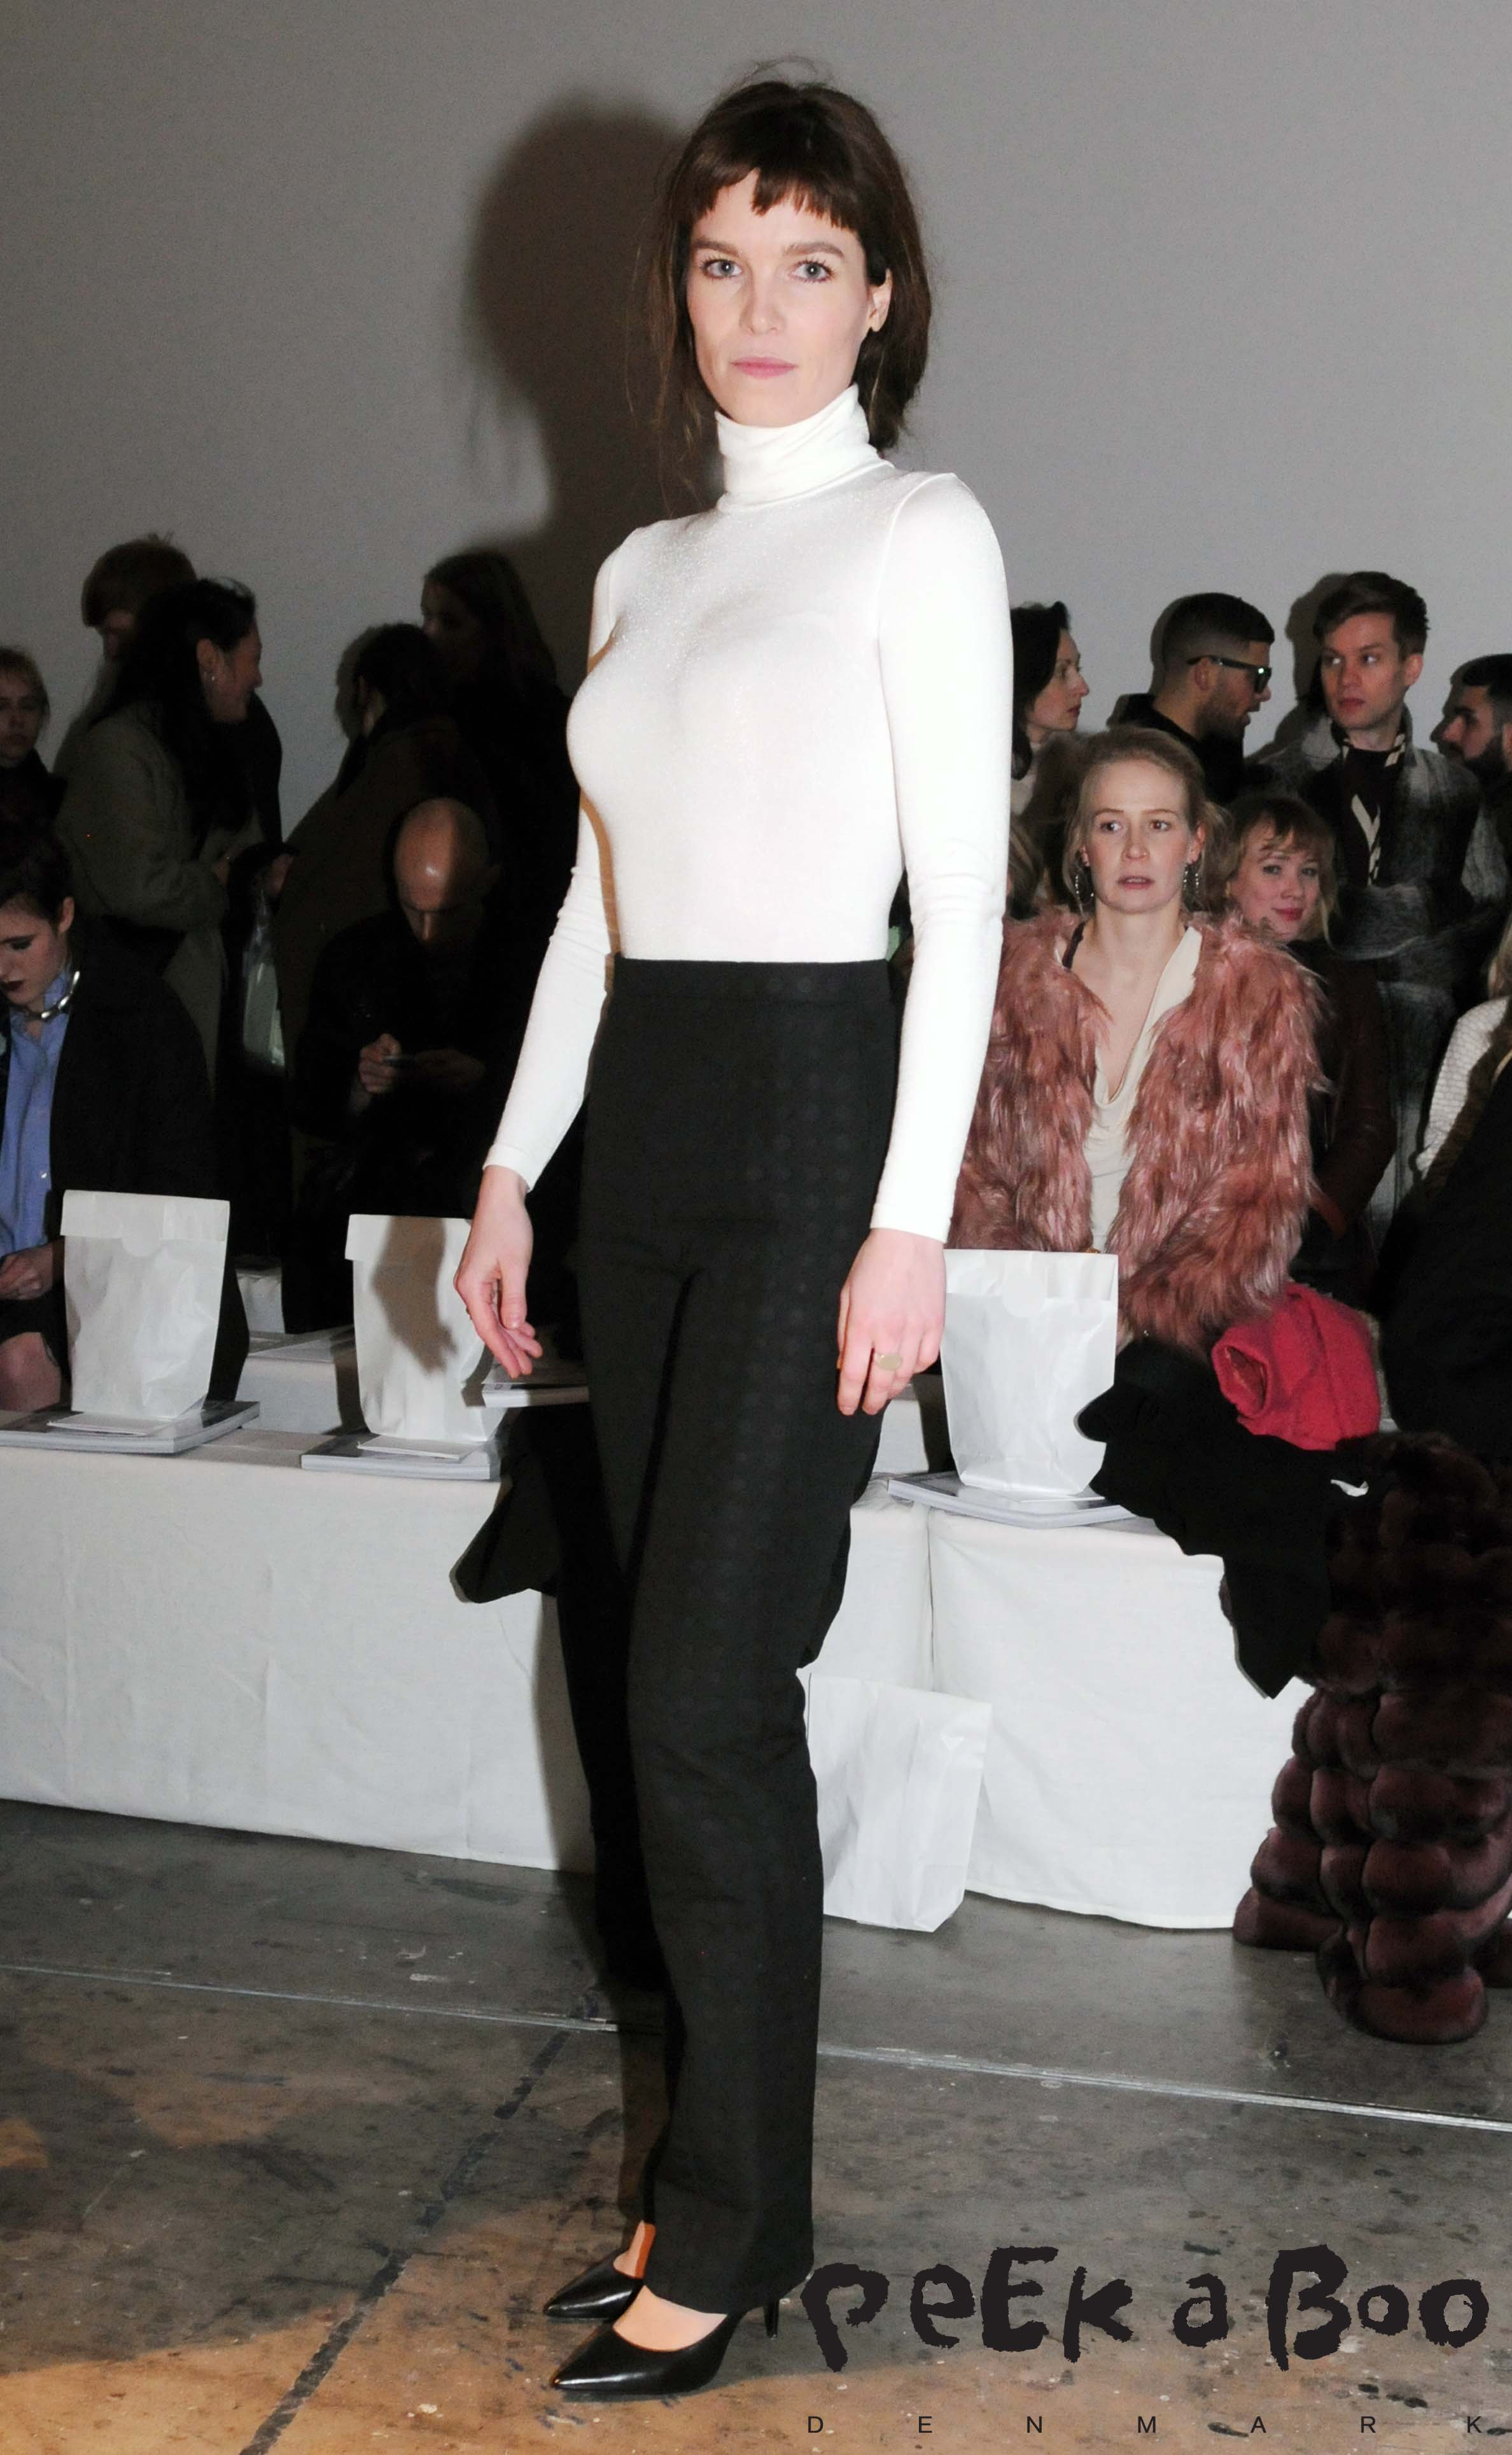 On front row actress Marie Bach Hansen wearing Mark Kenley Domino Tan to the AW 15 show during Copenhagen Fashion Week